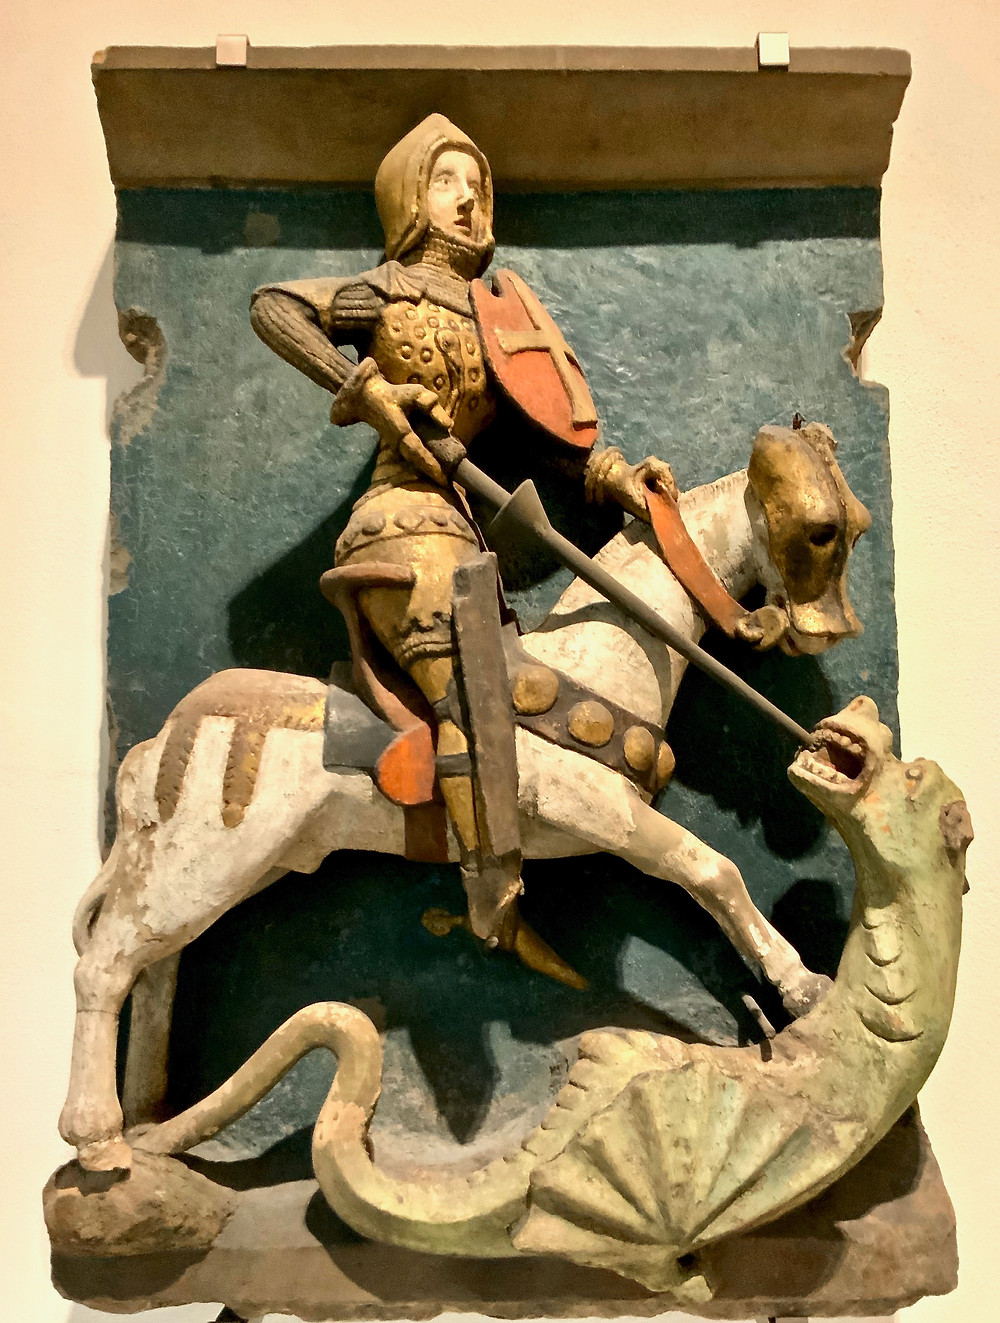 Ubiquitous St. George slaying the dragon. Every European country seems to claim St. George